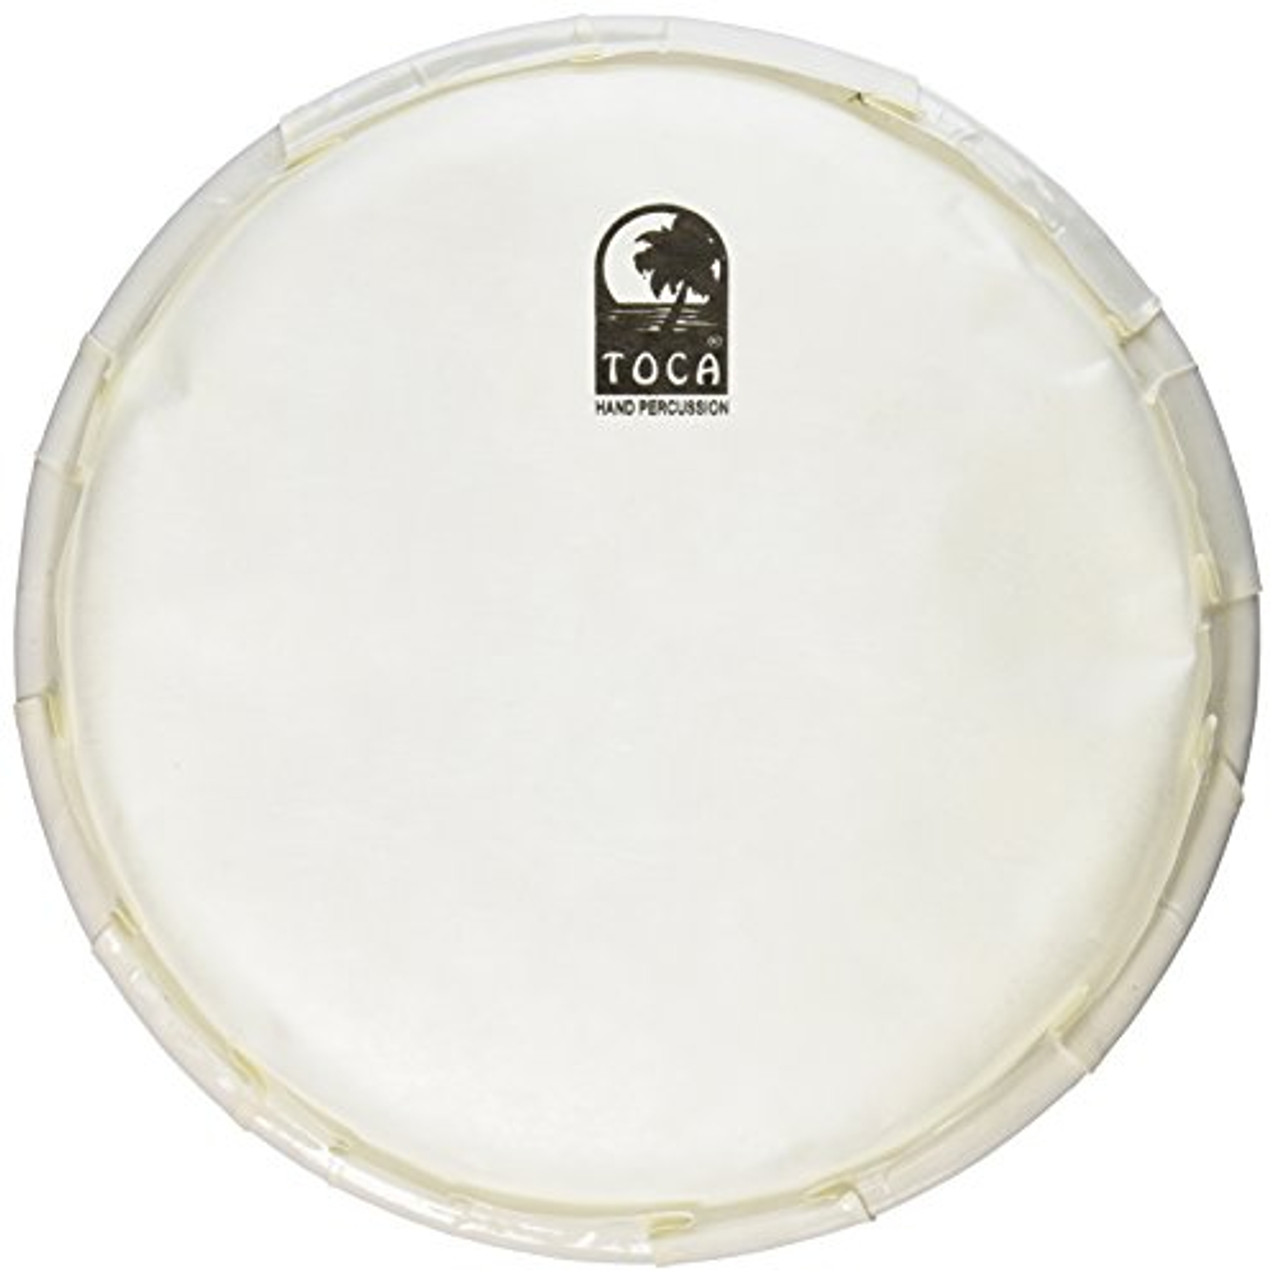 Toca a TP-DJHSR12 12-Inch Head for Rope Tuned Freestyle II Djembe